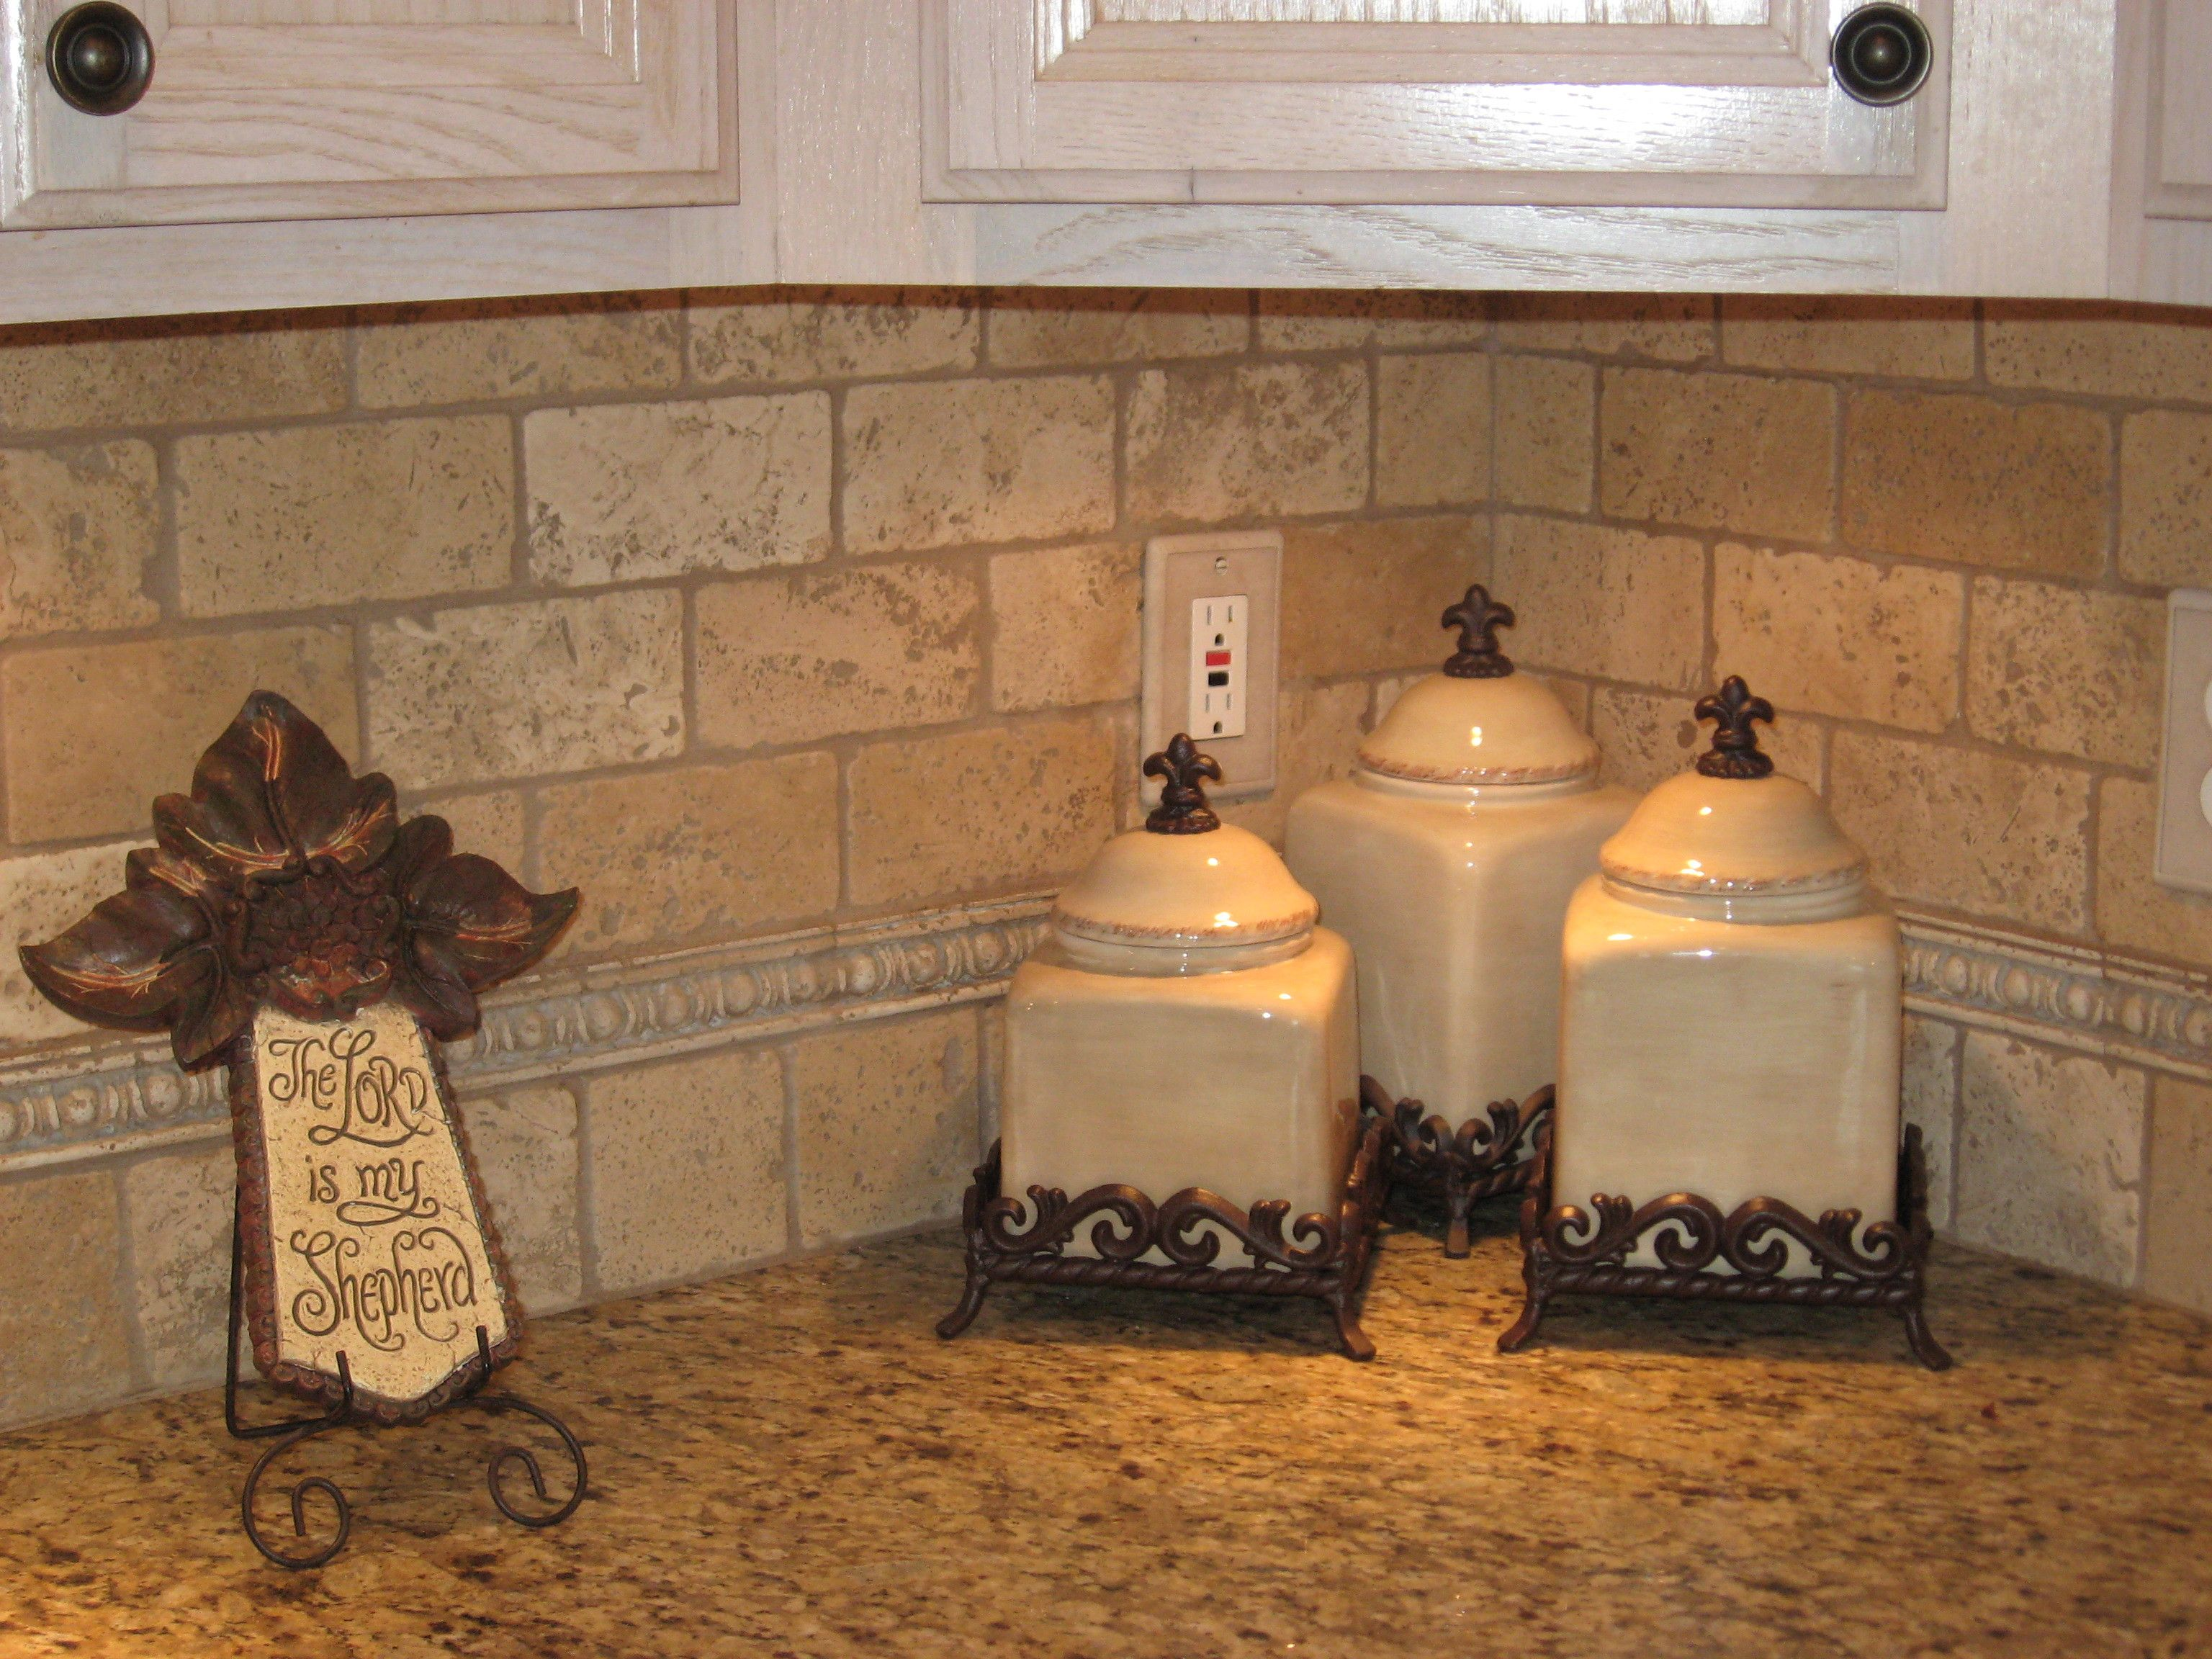 Uncategorized Travertine Kitchen Backsplash travertine tile backsplash light 134 turkish dallas